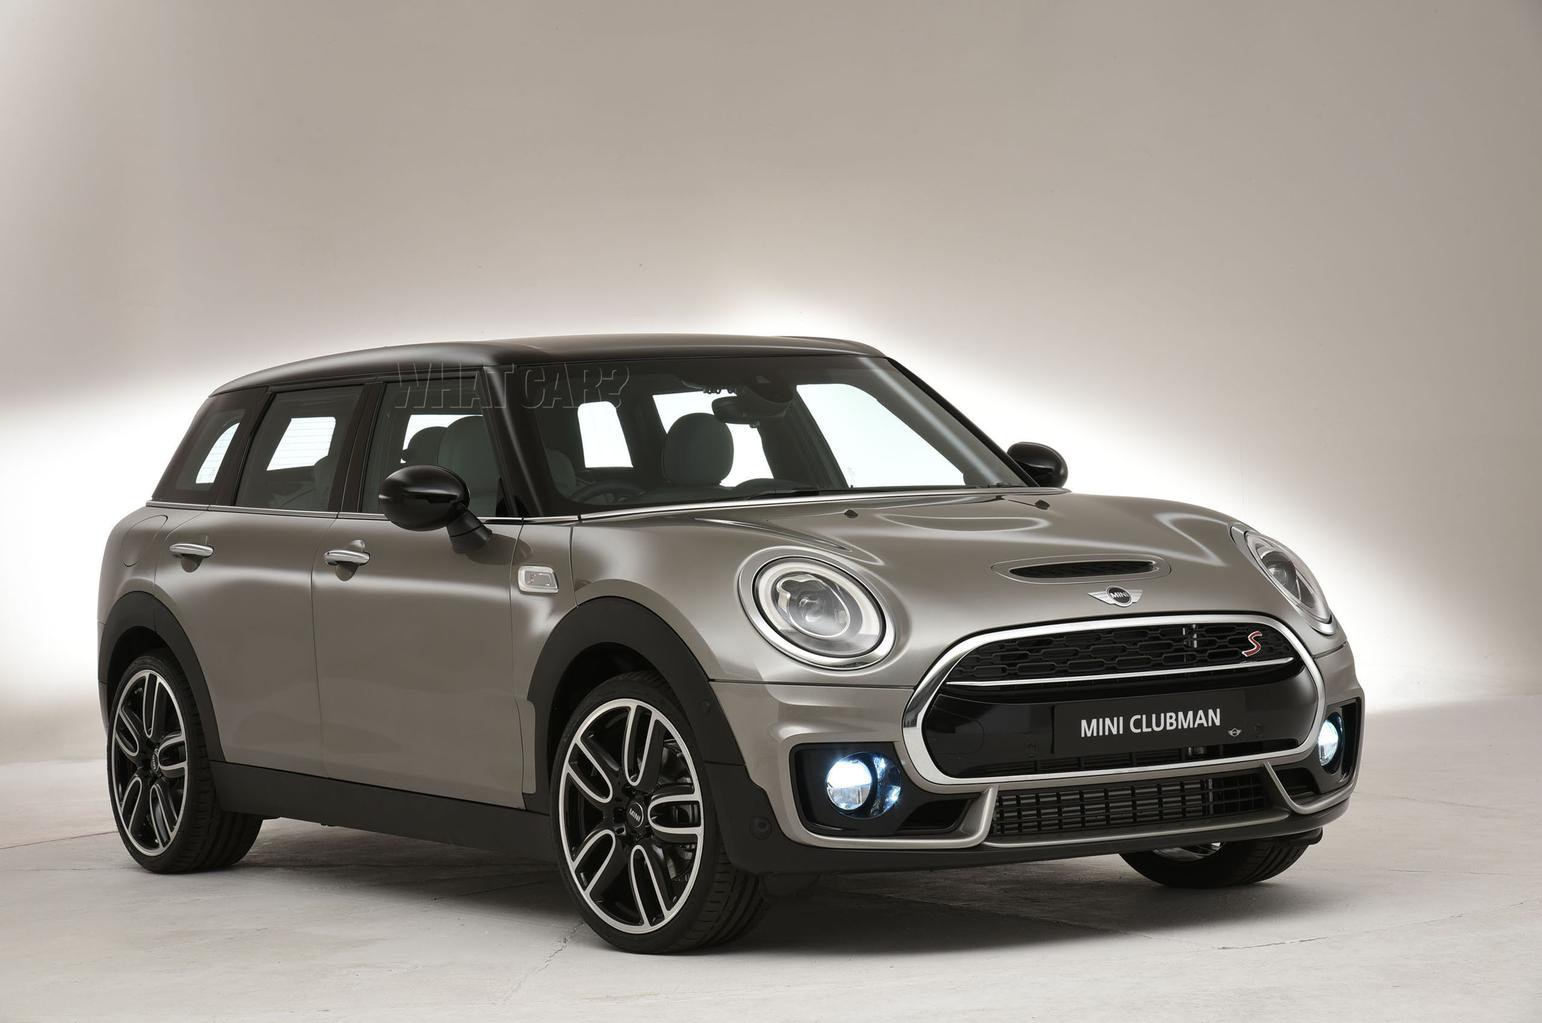 2015 Mini Clubman - new pictures, pricing and on-sale date